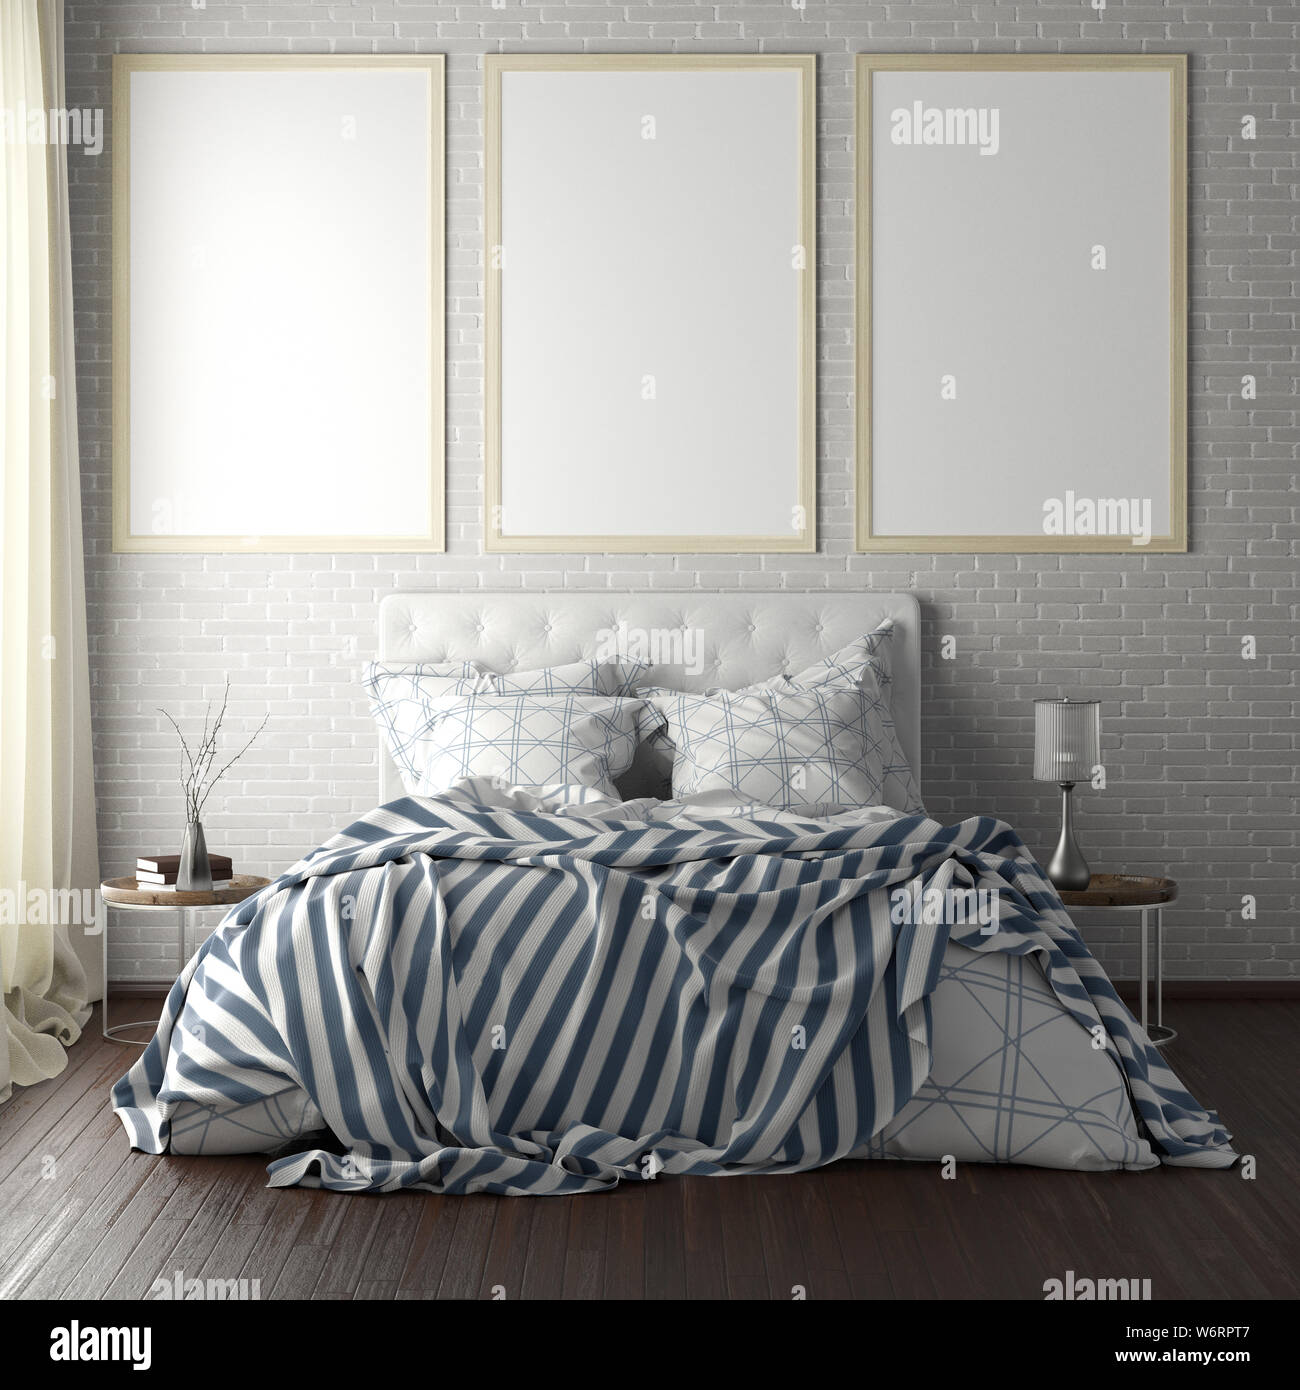 Three vertical poster frame mockups above the bed on white brick wall in bedroom. Soft morning light through the curtain. 3d illustration Stock Photo